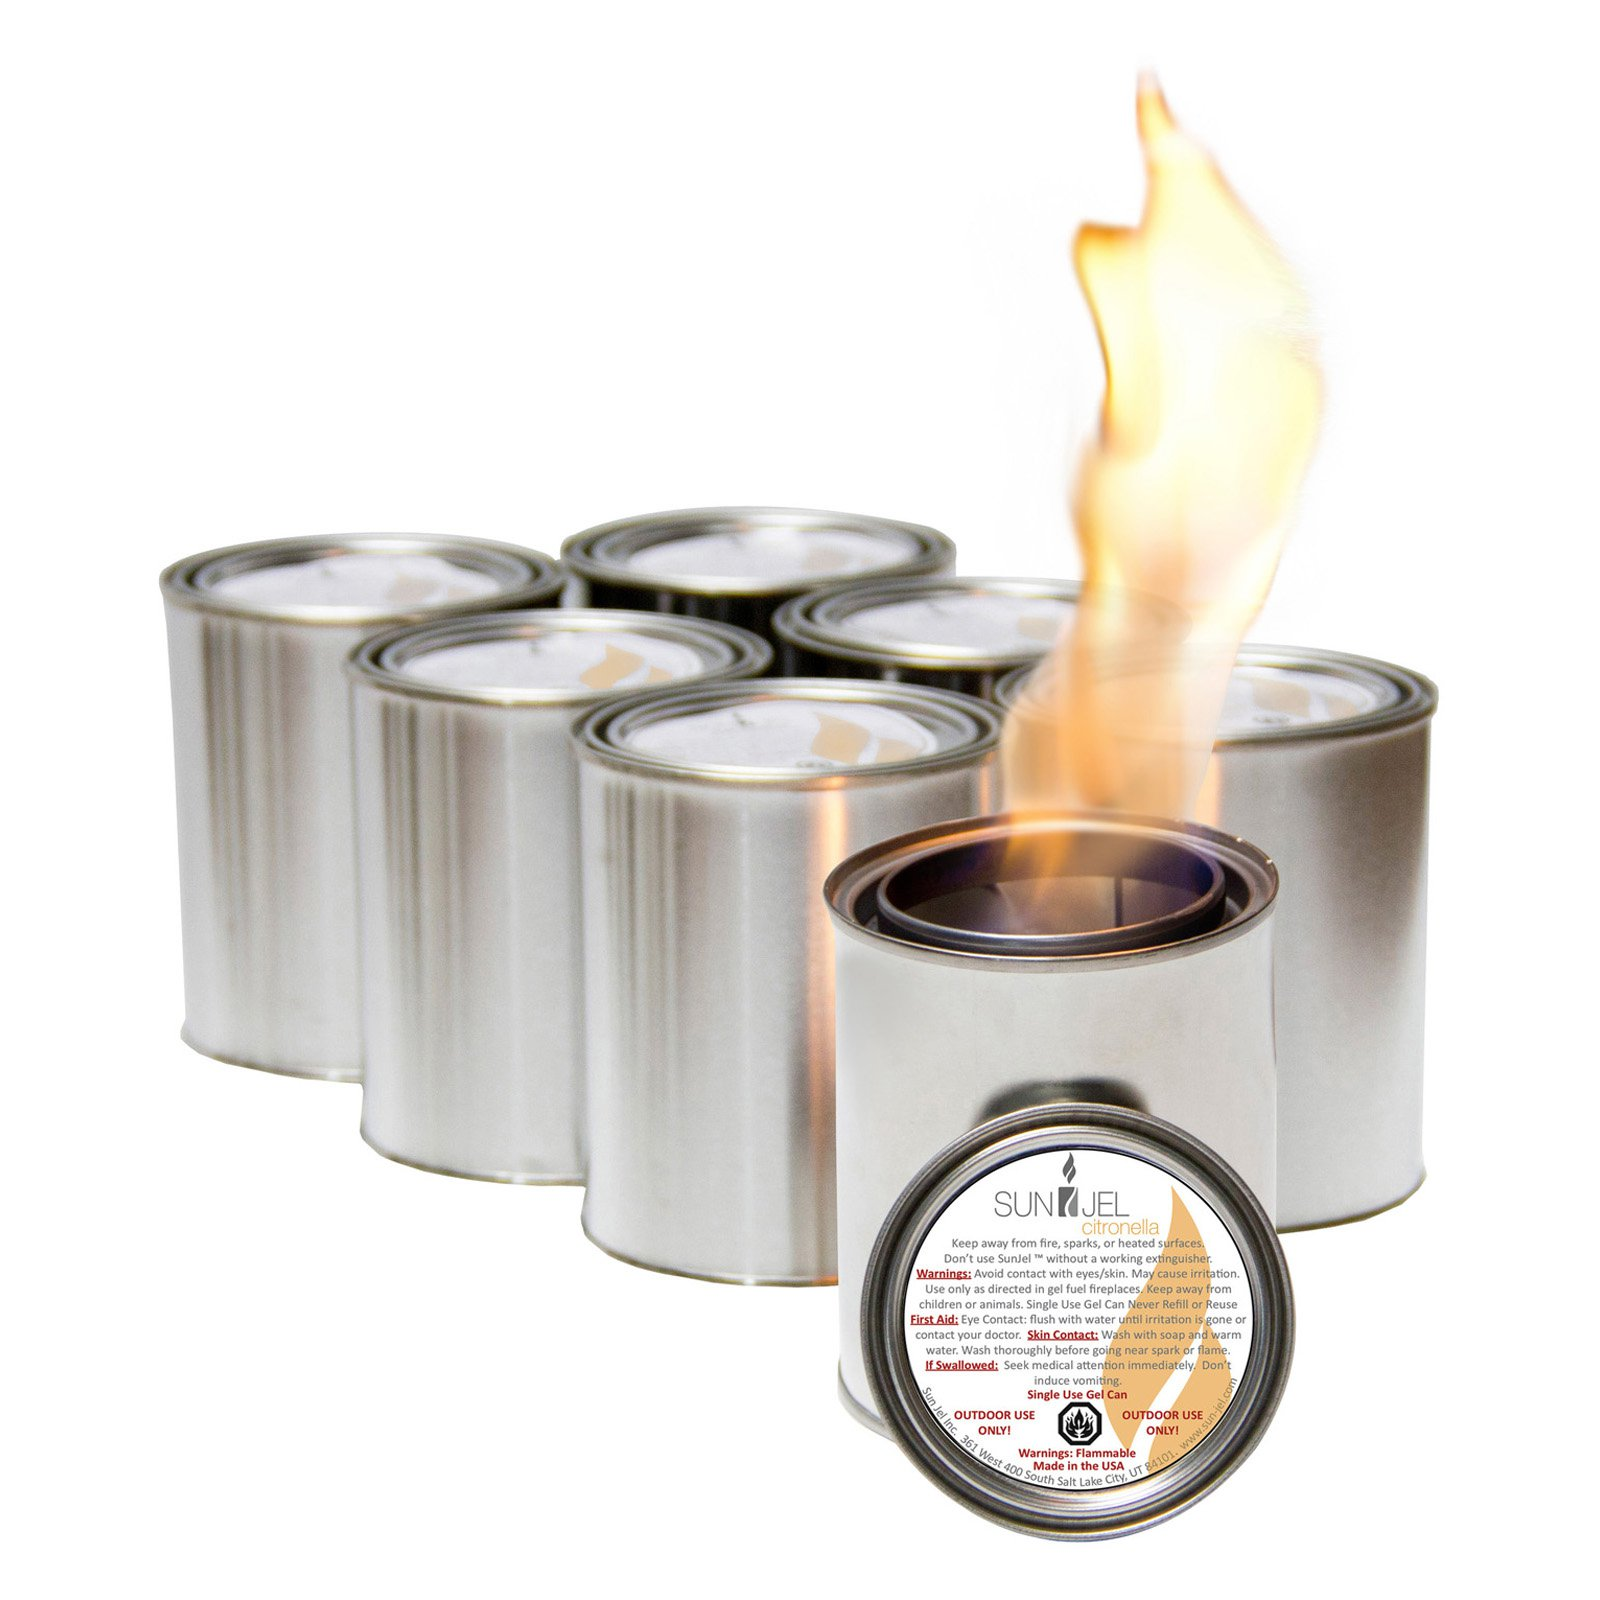 SunJel Citronella Gel Fireplace Fuel